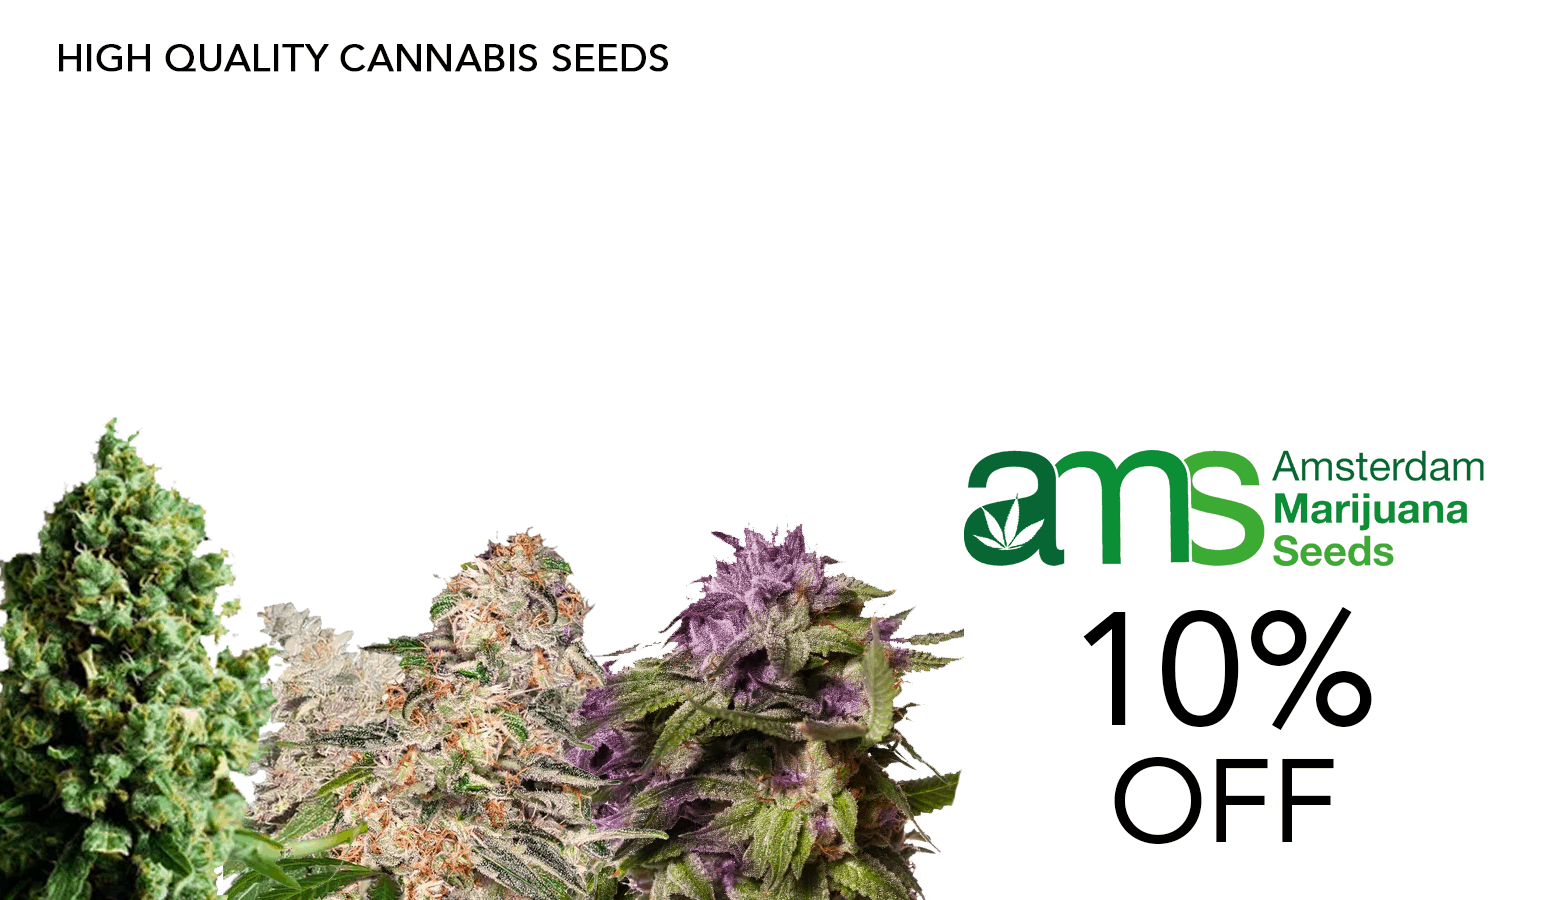 Amsterdam Marijuana Seeds Coupon Code Offer Website